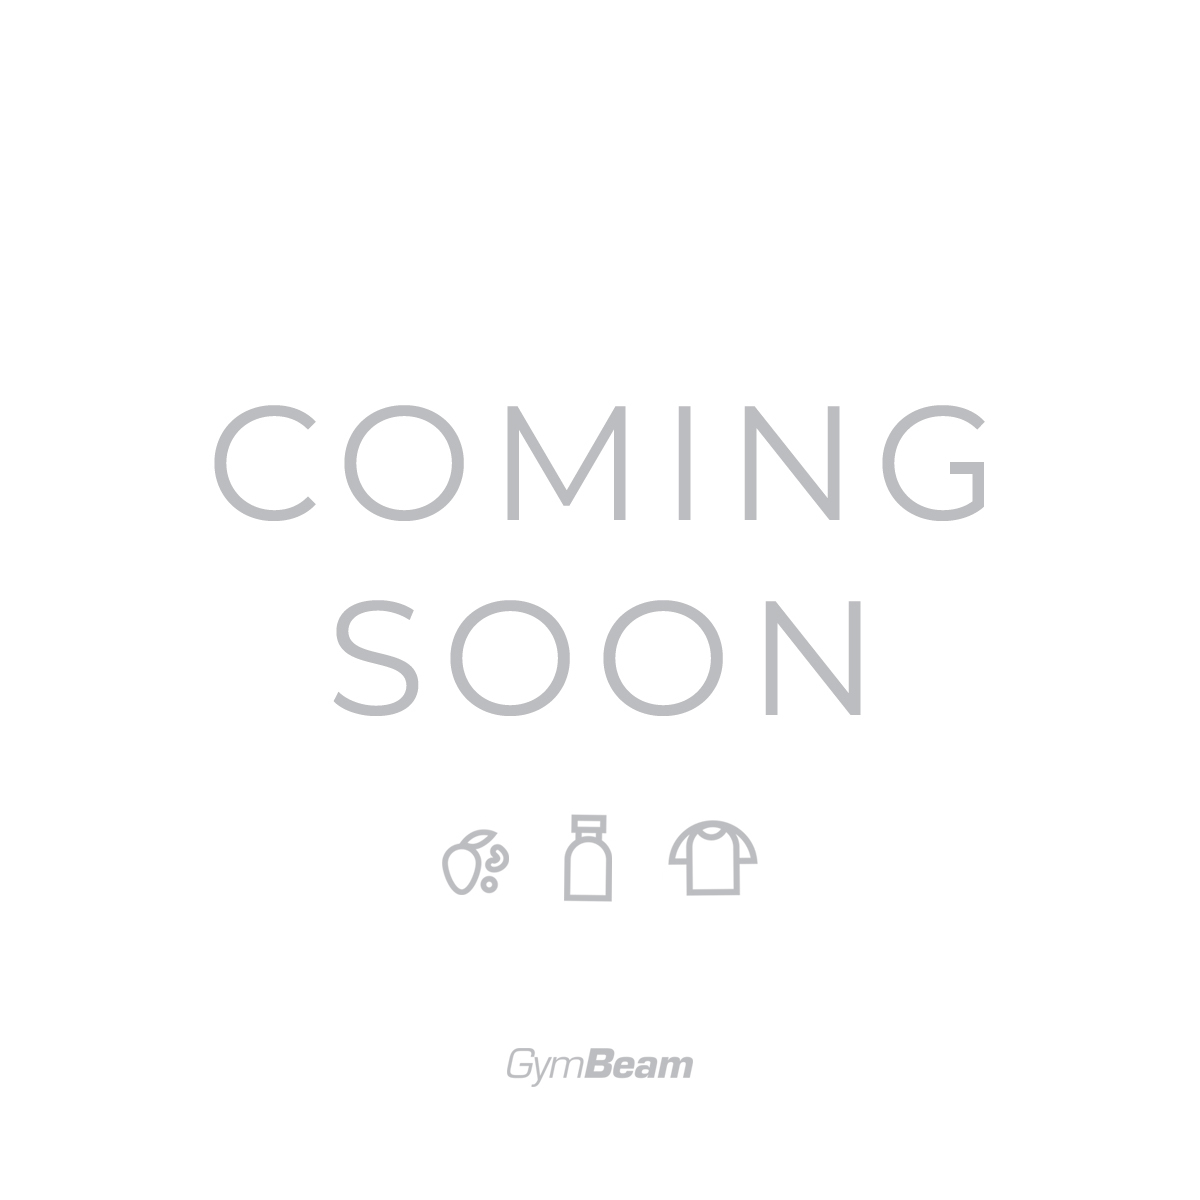 Arzător de grăsimi The Ripper 150 g - Cobra Labs